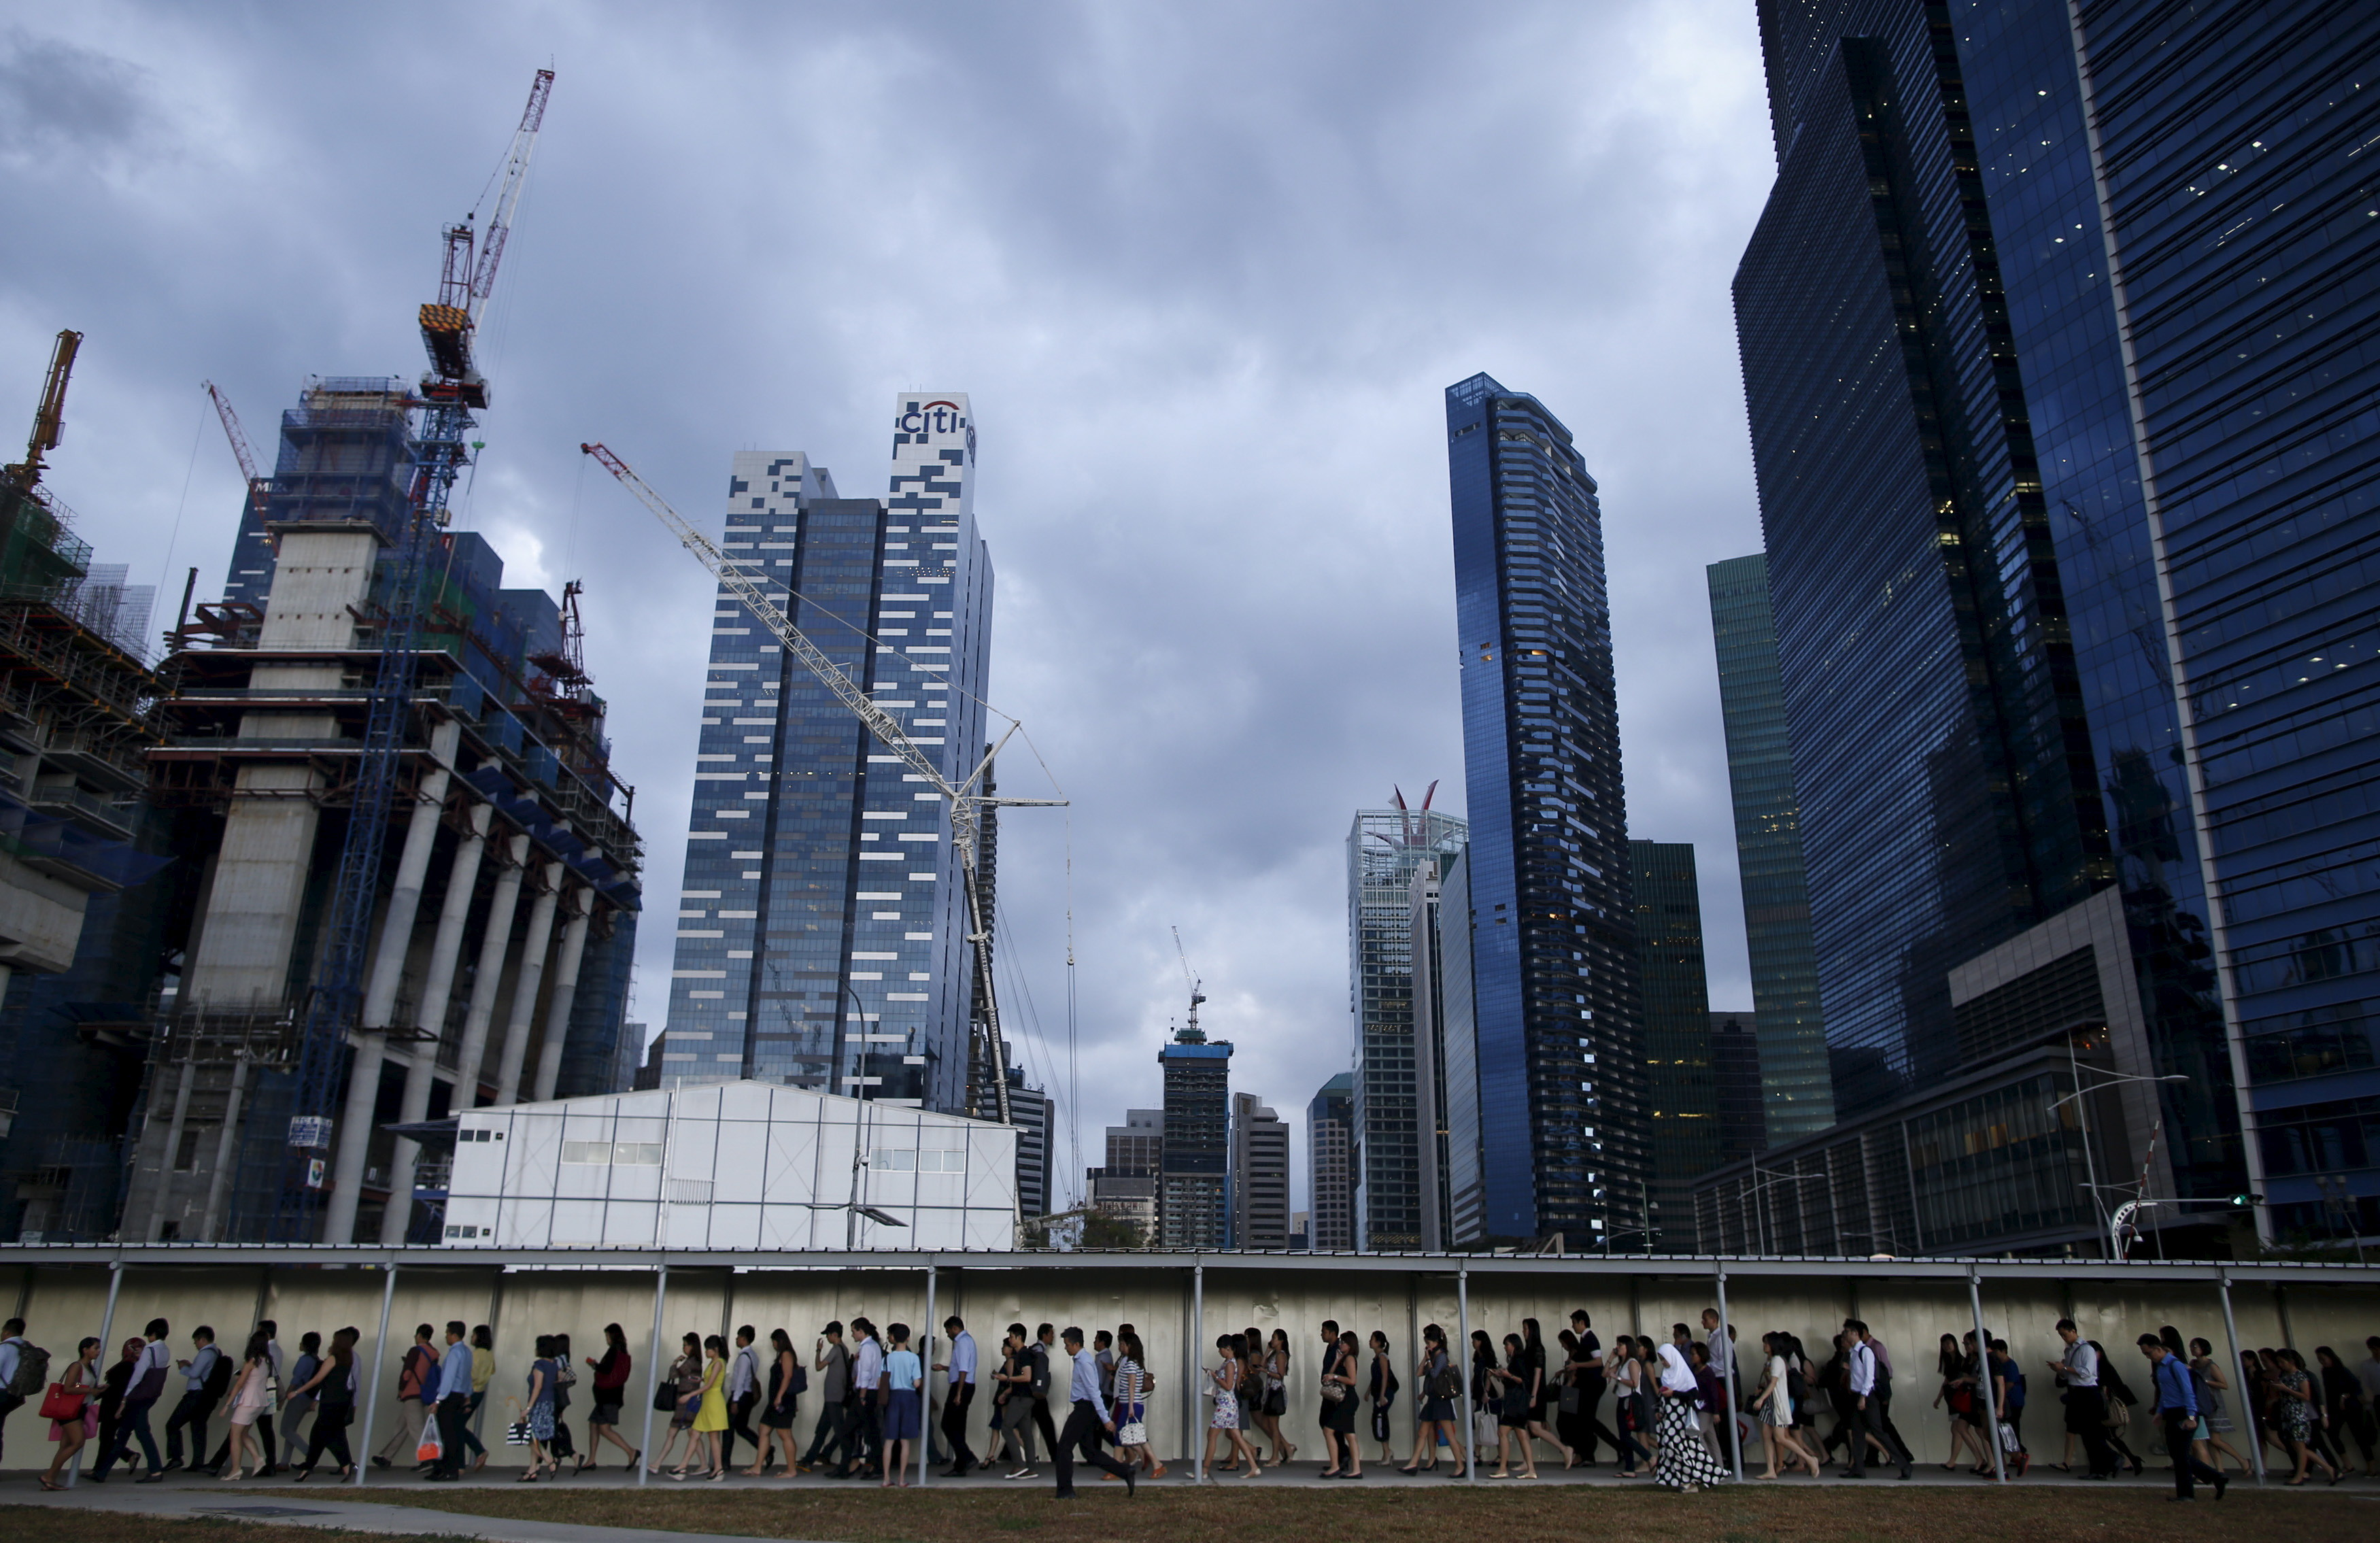 Commuters walk to the train station during evening rush hour in the financial district of Singapore March 9, 2015. When Singapore celebrated its 50th birthday as an independent country in August,the city state bore little resemblance to the tiny island nation that was expelled from Malaysia in 1965. Its physical stature has swollen by 20 percent thanks to one of the world's most aggressive land reclamation drives.  REUTERS/Edgar Su/Files  TPX IMAGES OF THE DAYPICTURE 2 OF 31 FOR WIDER IMAGE STORY 'EARTHPRINTS: SINGAPORE' SEARCH 'EARTHPRINTS SINGAPORE' FOR ALL IMAGES          - RTS7WG7